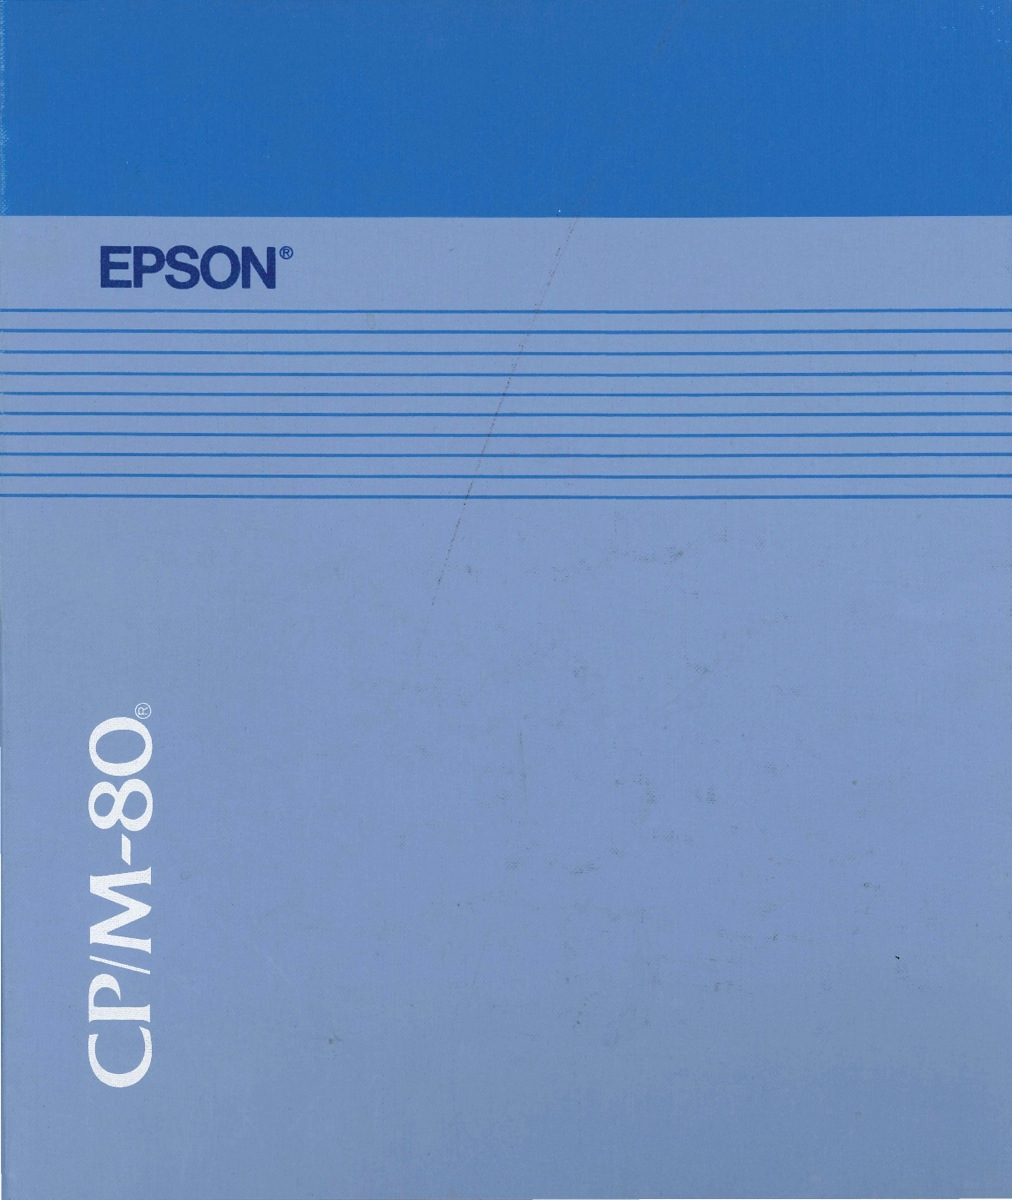 Epson cpm front